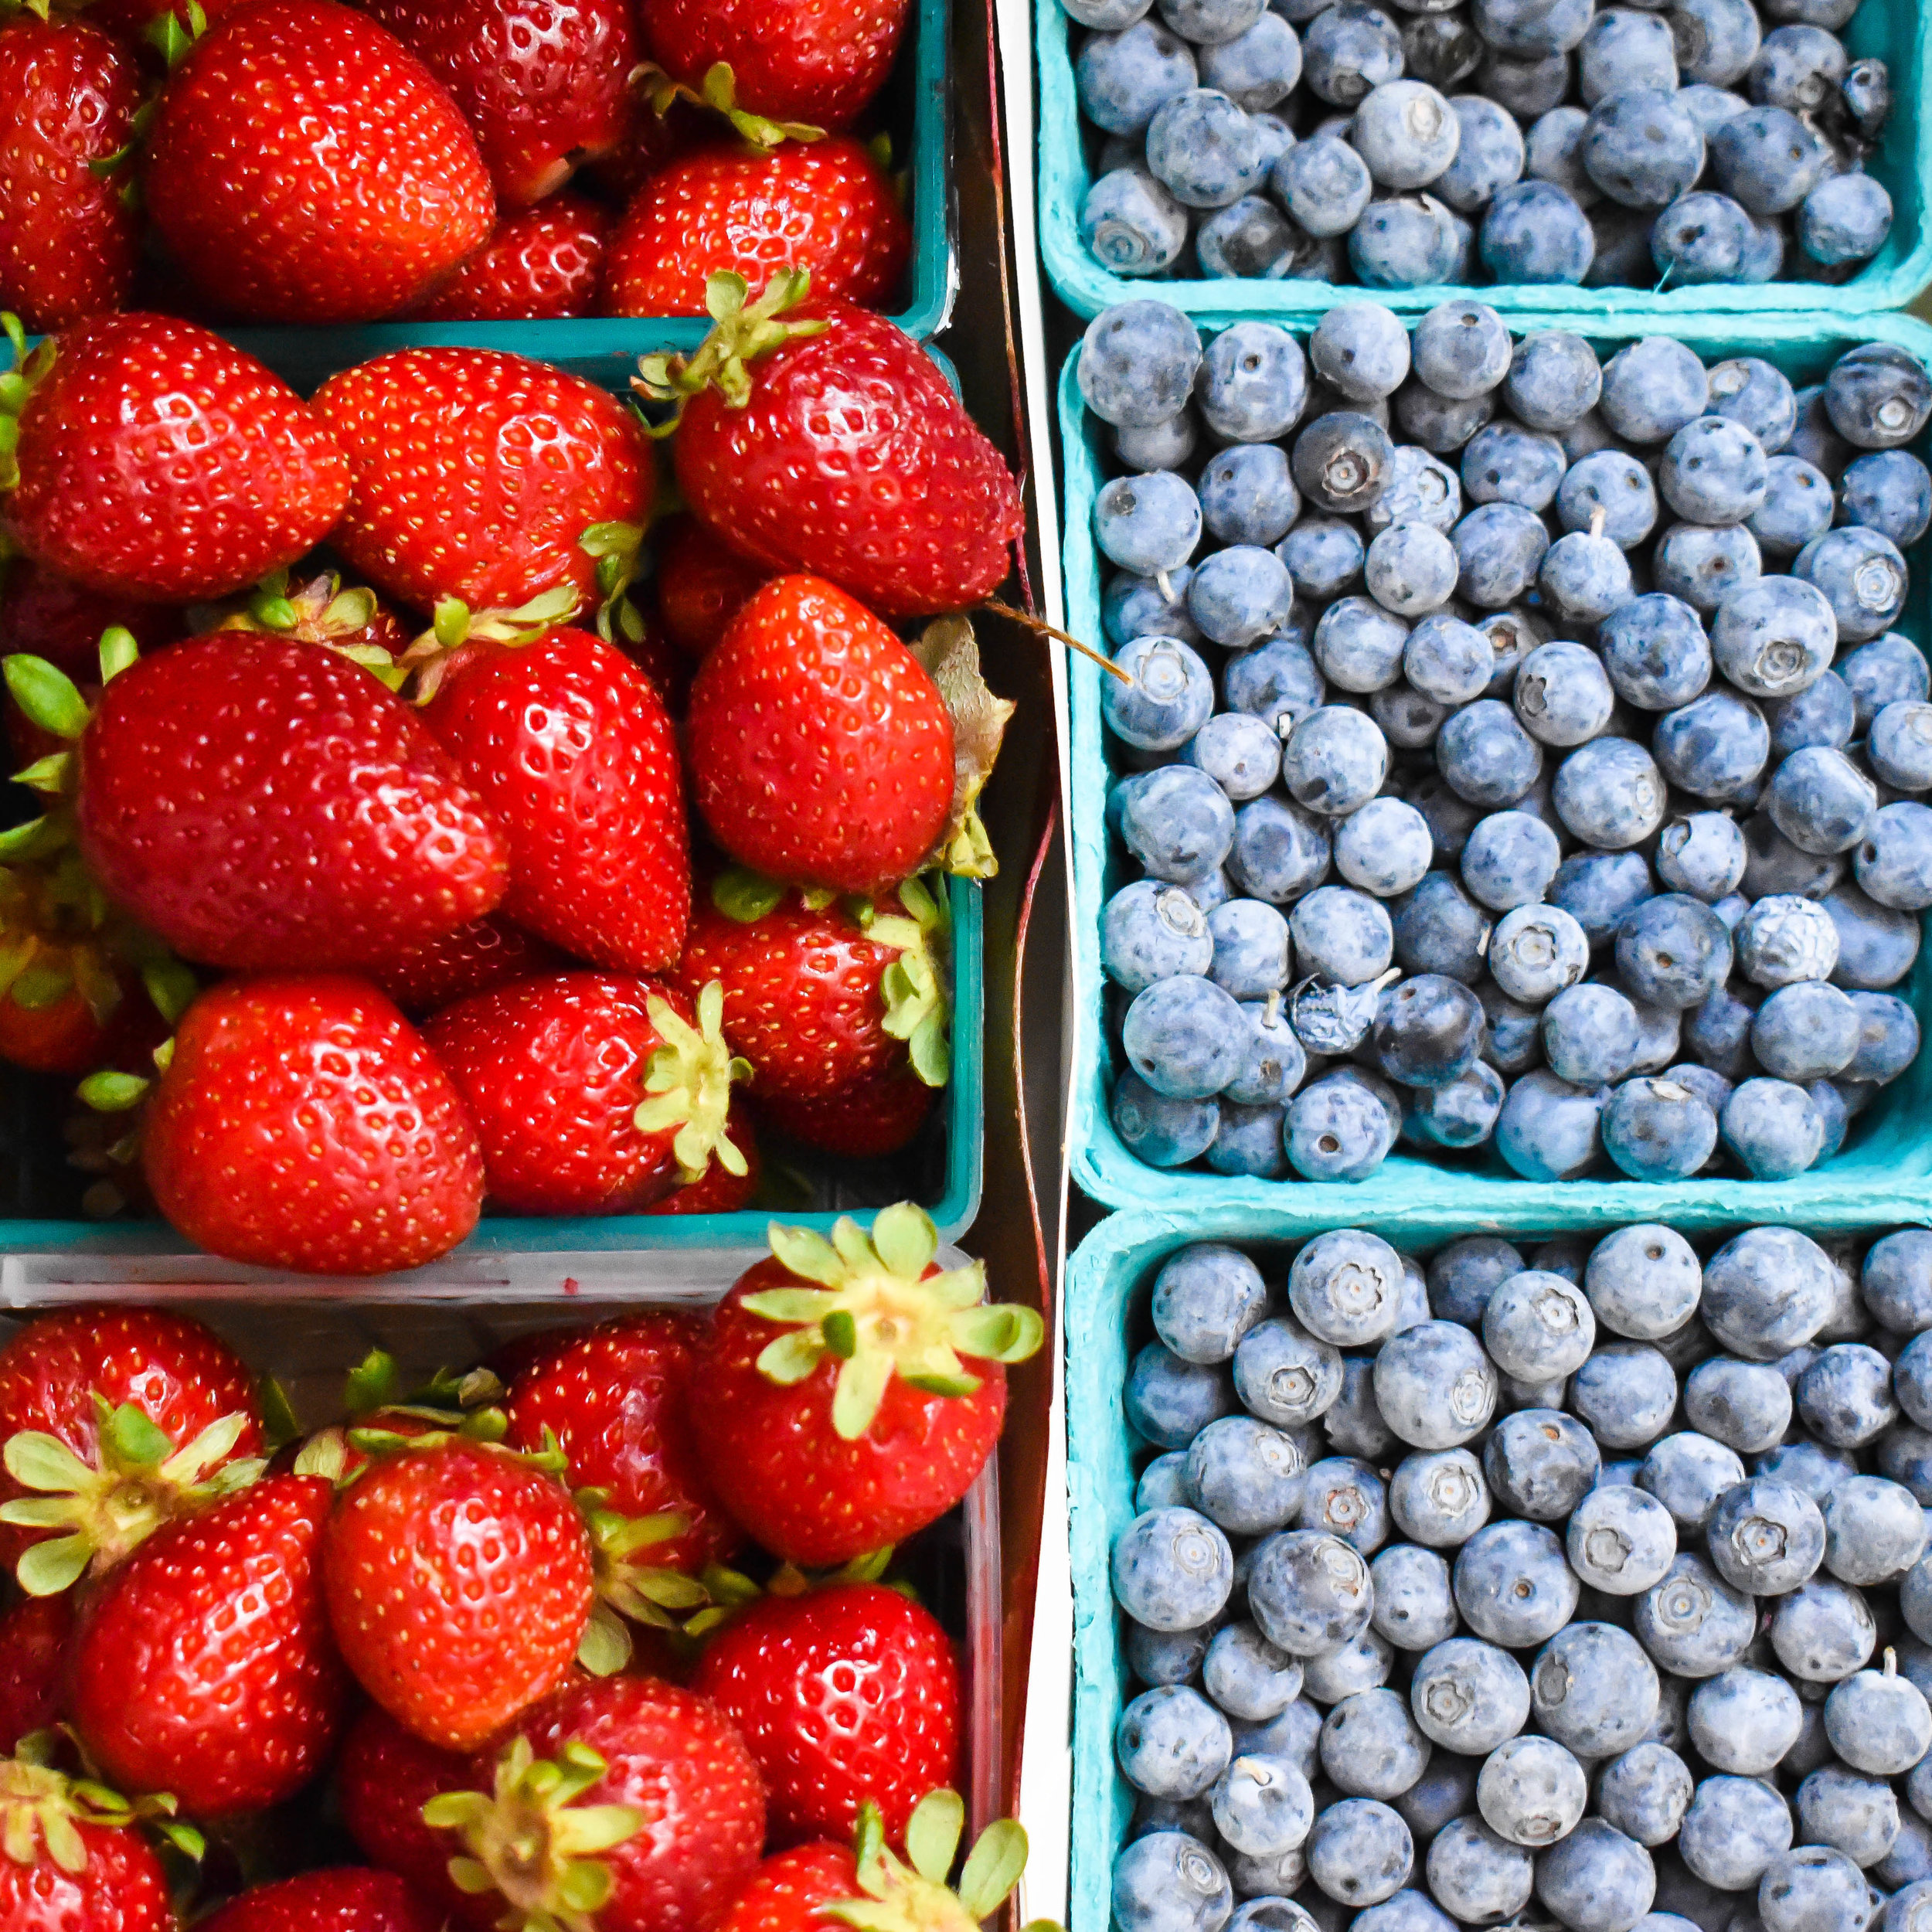 overhead photograph of strawberries and blueberries in square boxes